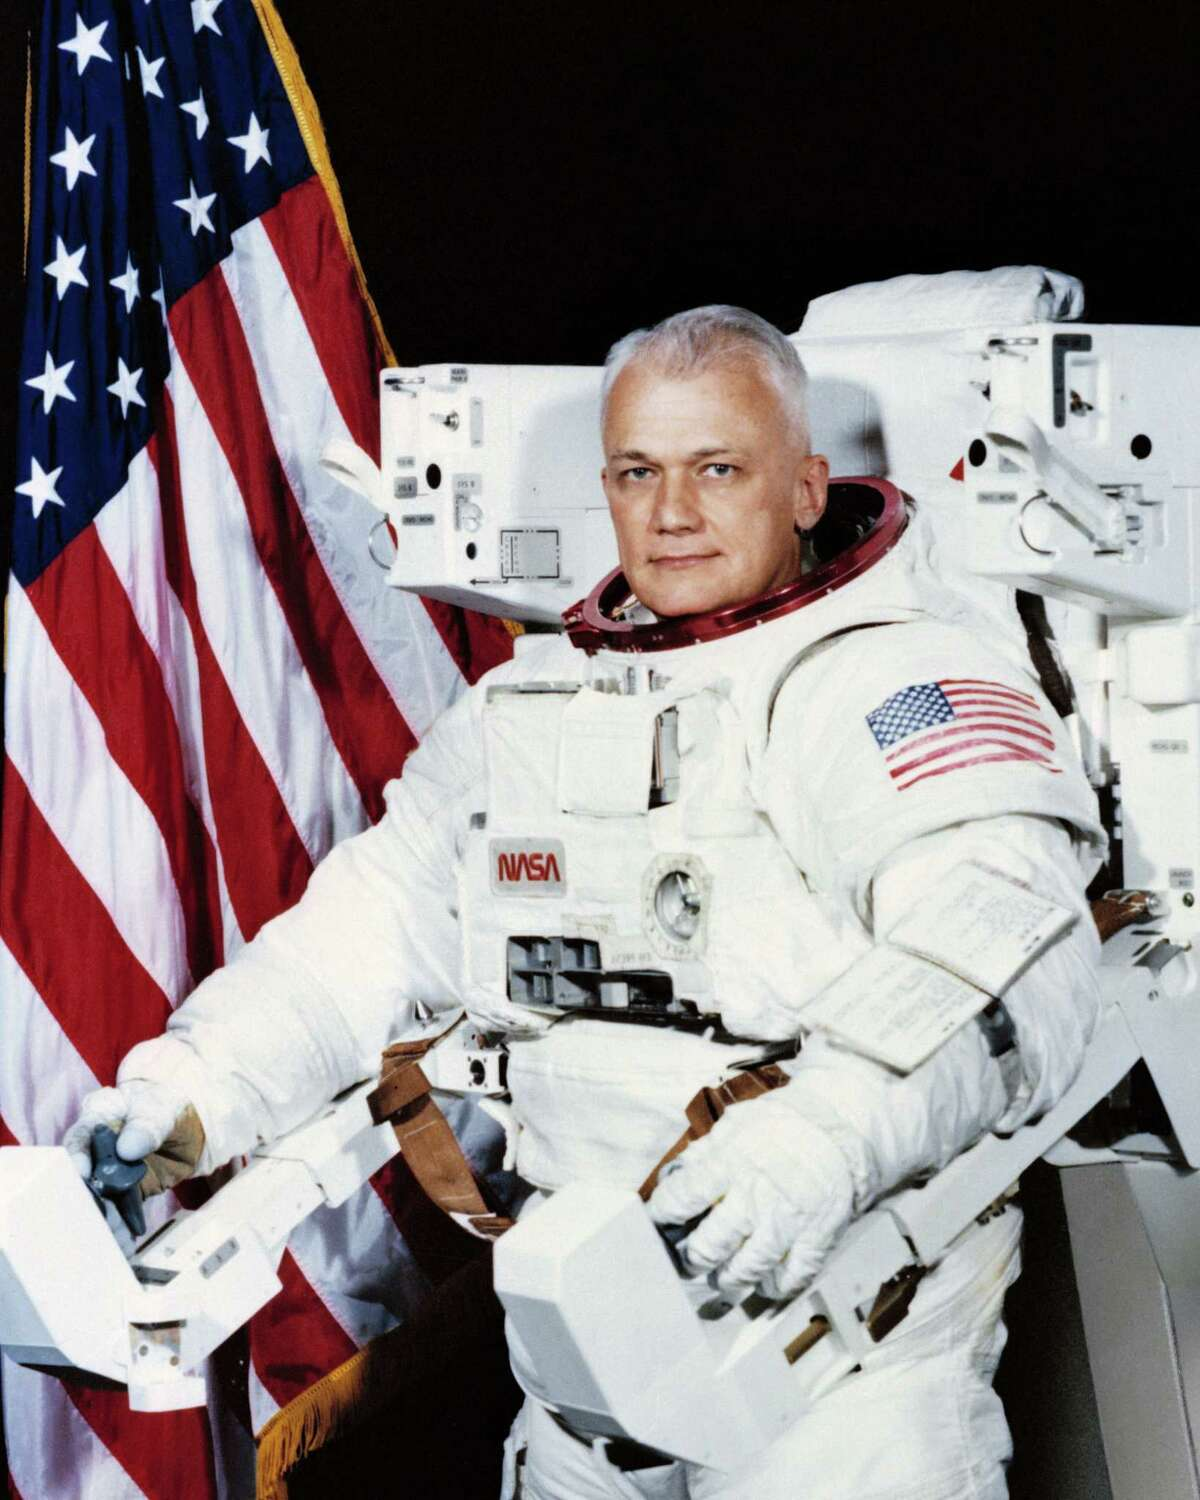 Official Space Shuttle portrait showing Astronaut Bruce McCandless, II, attired in the Shuttle Extravehicular Activity (EVA) Suit with Manned Maneuvering Unit (MMU) attached and American flag in background.